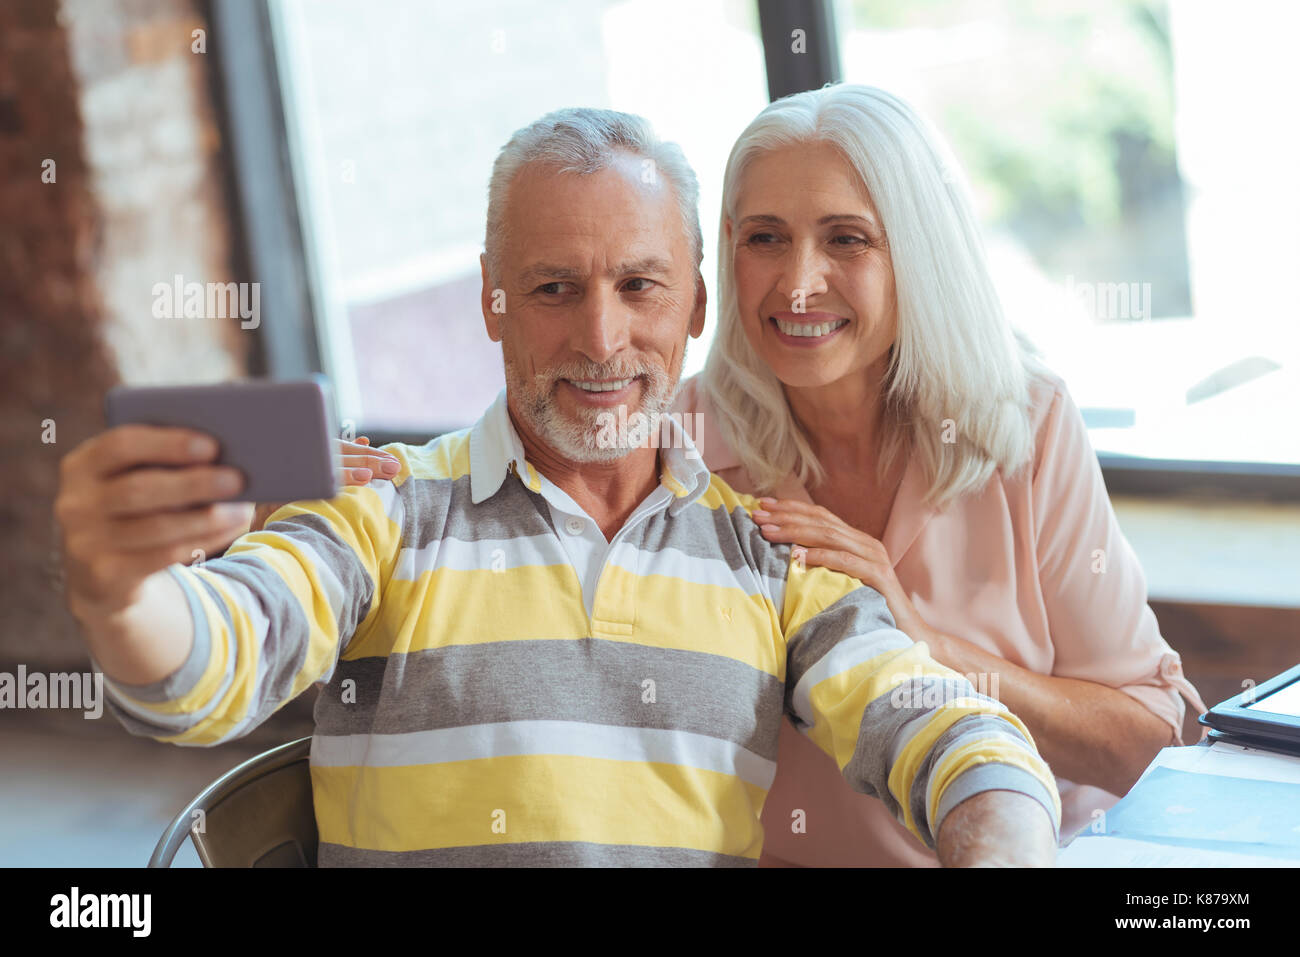 Positive aged couple making selfies - Stock Image